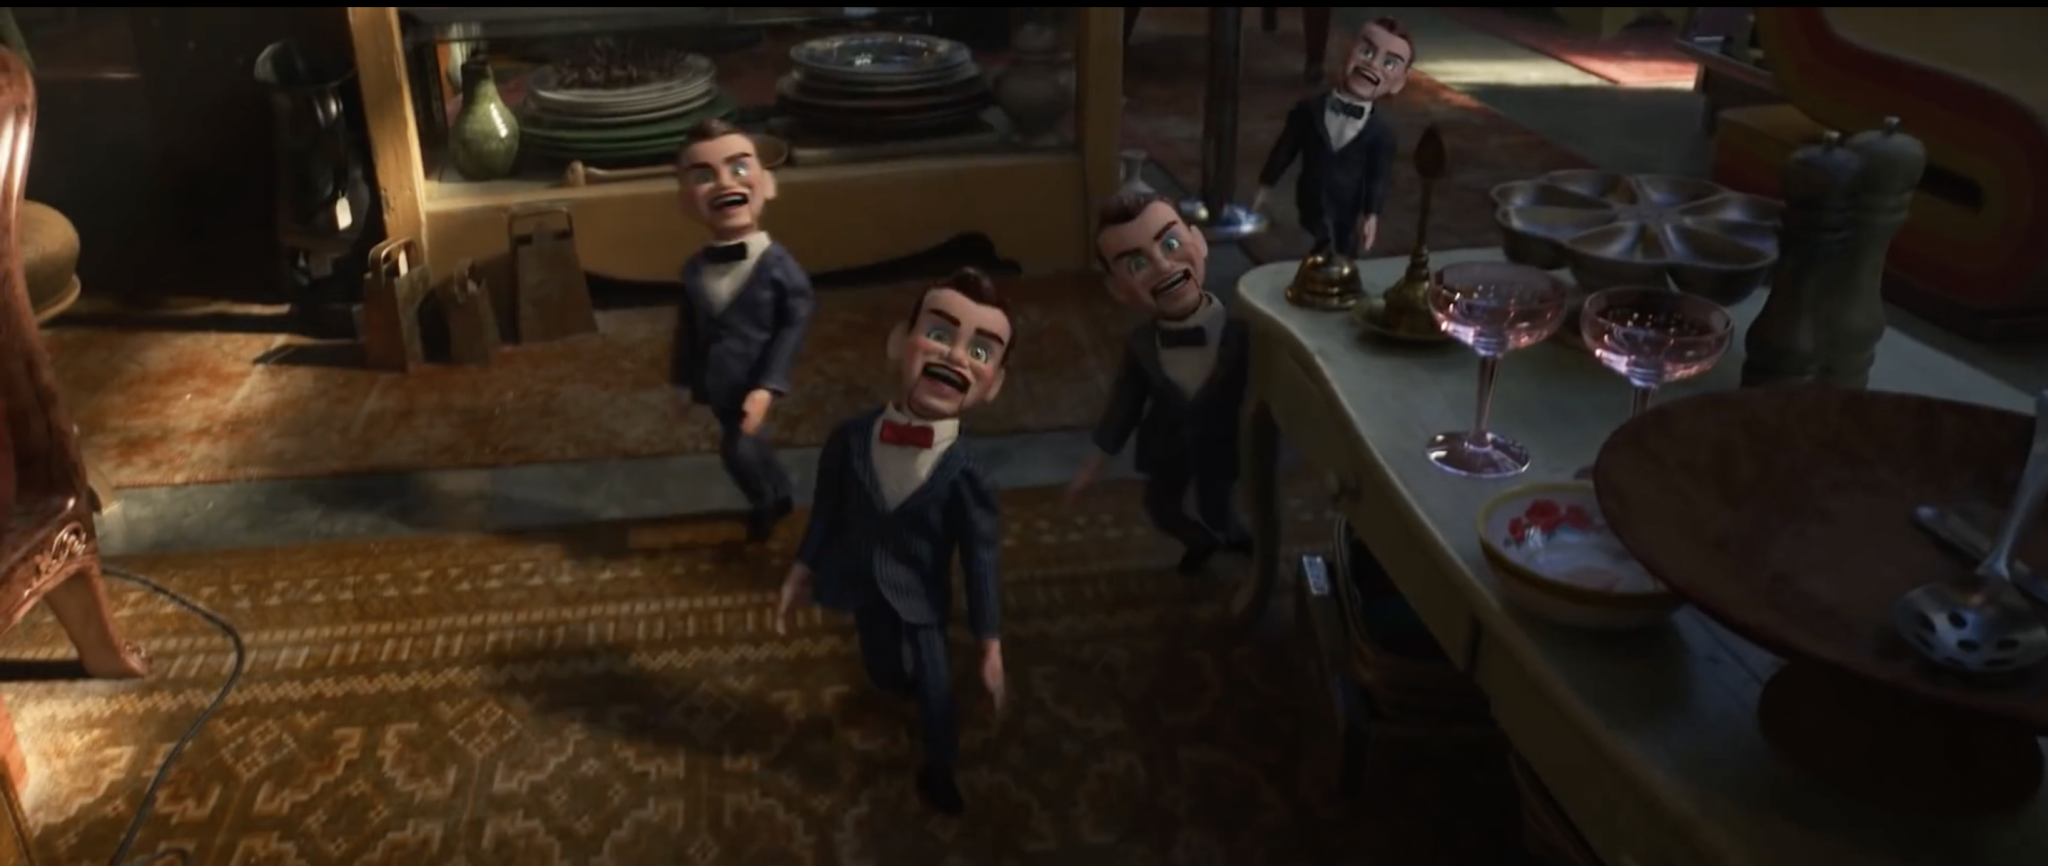 Image of the Benson dolls in Toy Story 4.